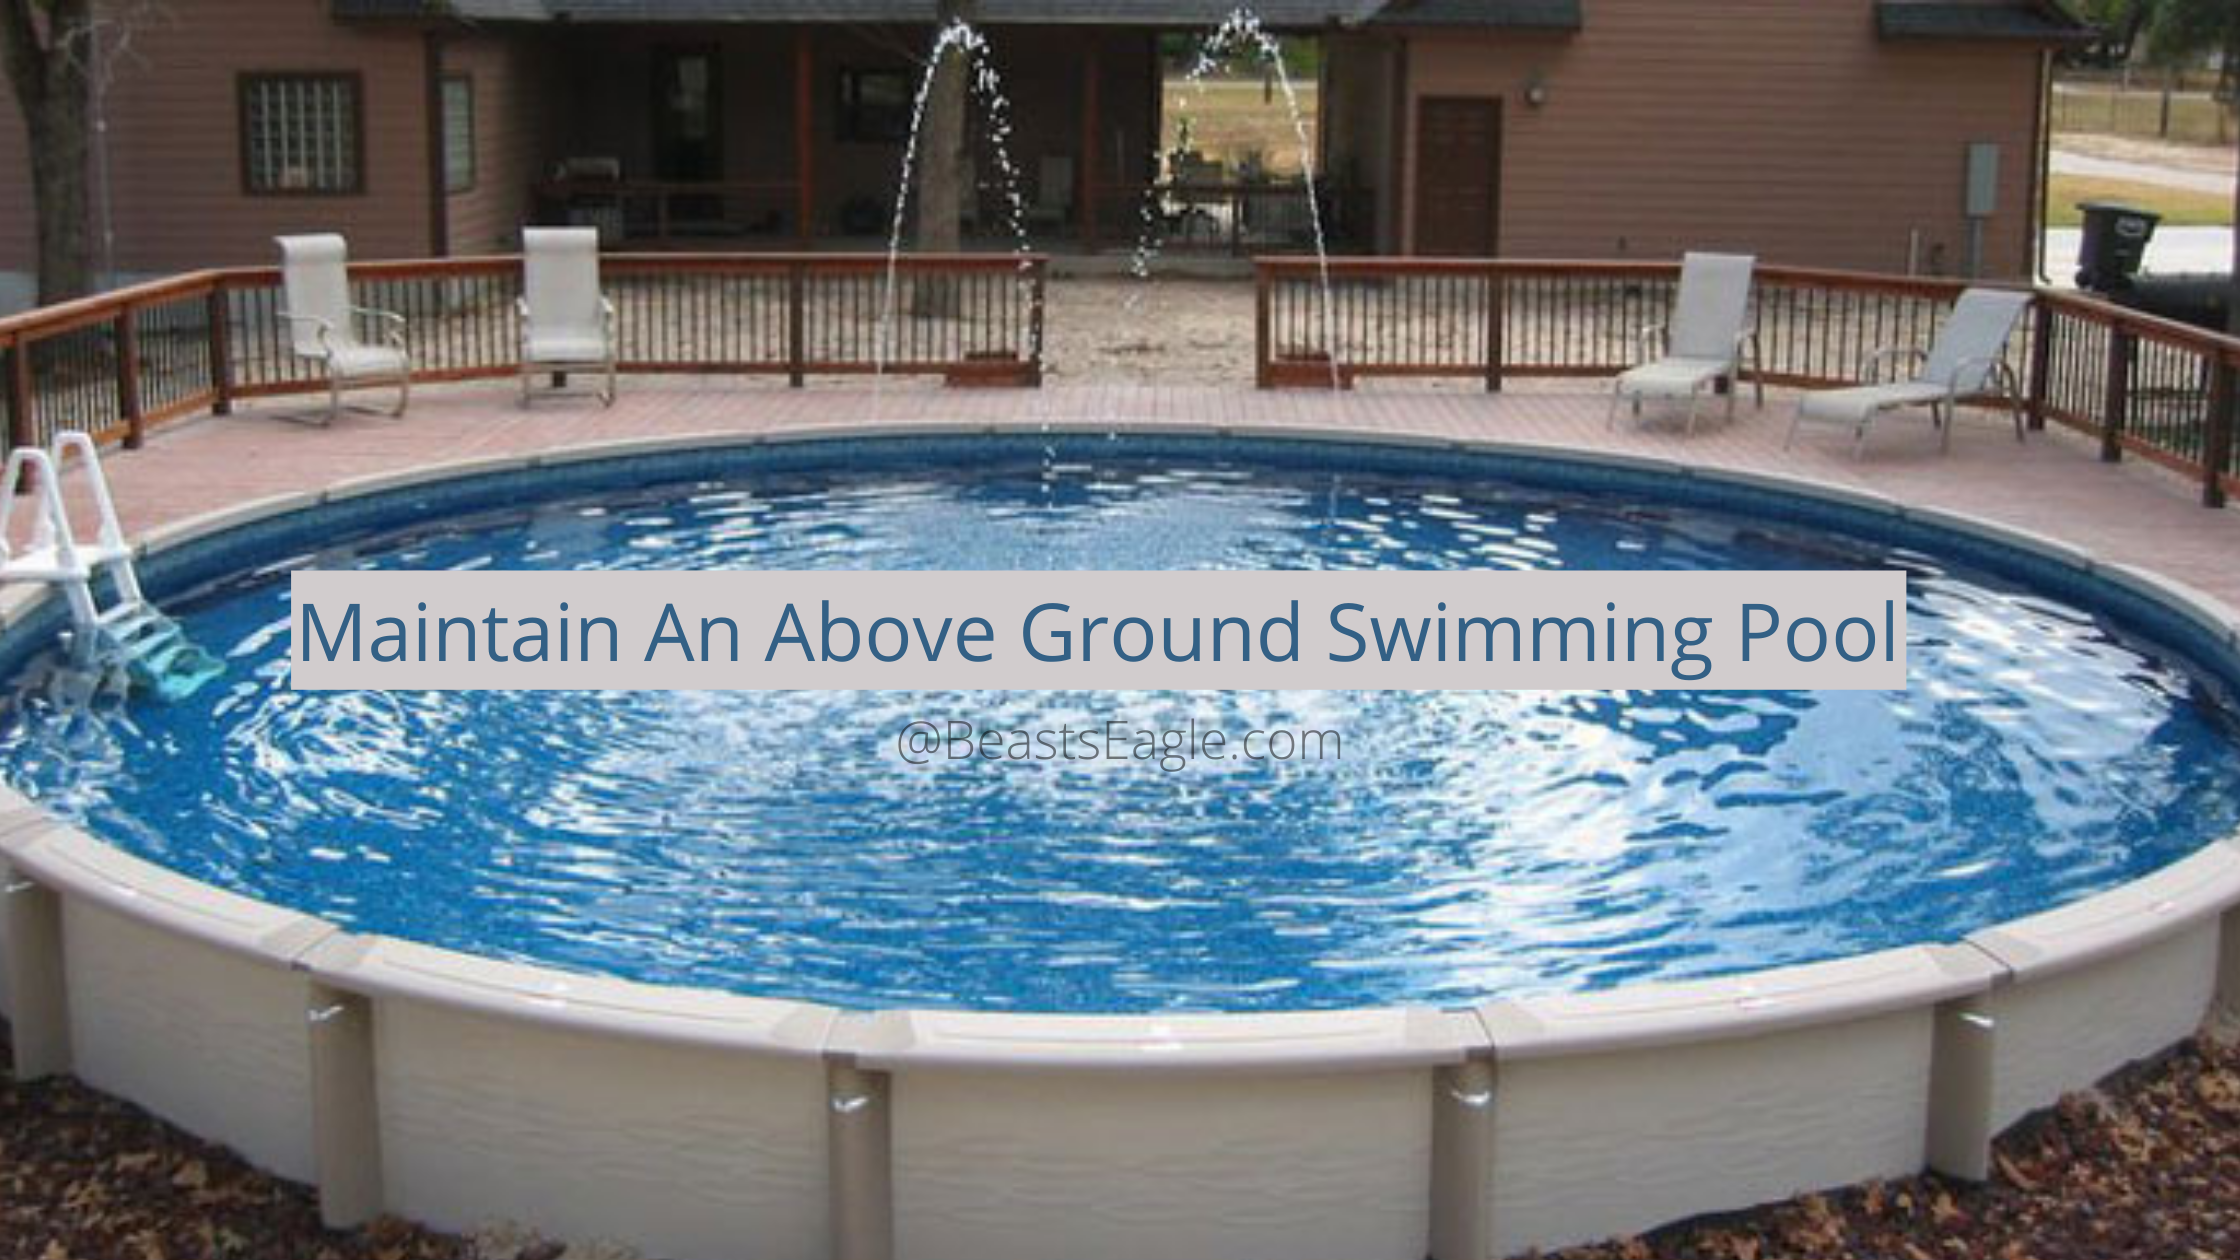 Maintain An Above Ground Swimming Pool